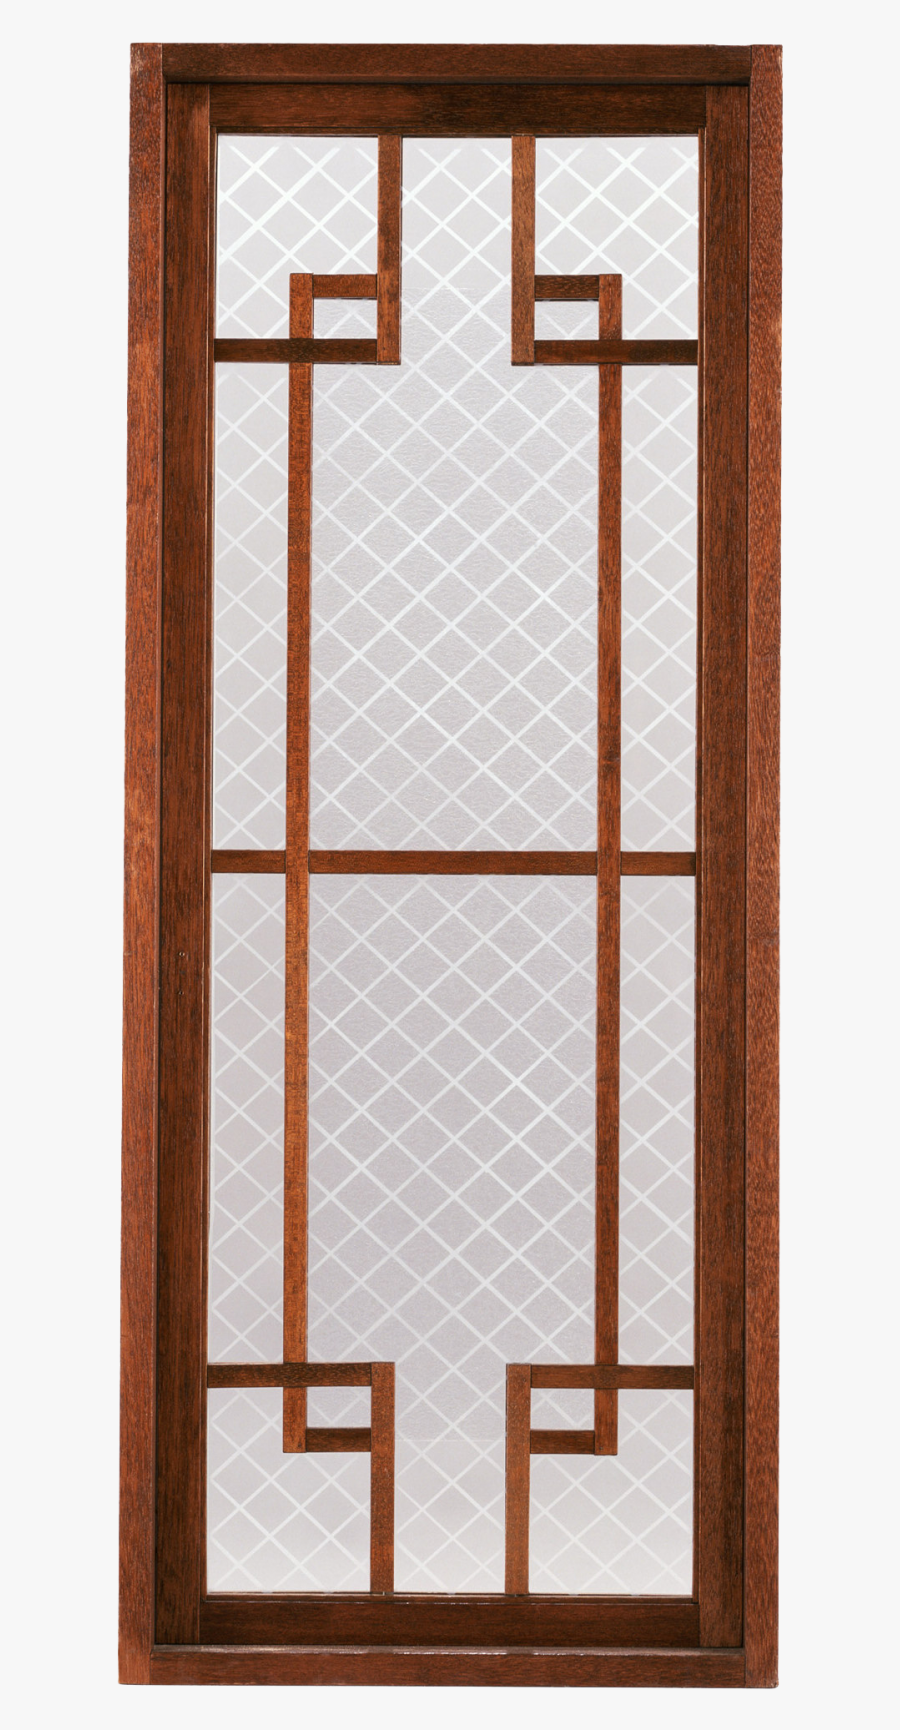 Glass And Wooden Door Png Image - Glass Sliding Doors And Windows, Transparent Clipart